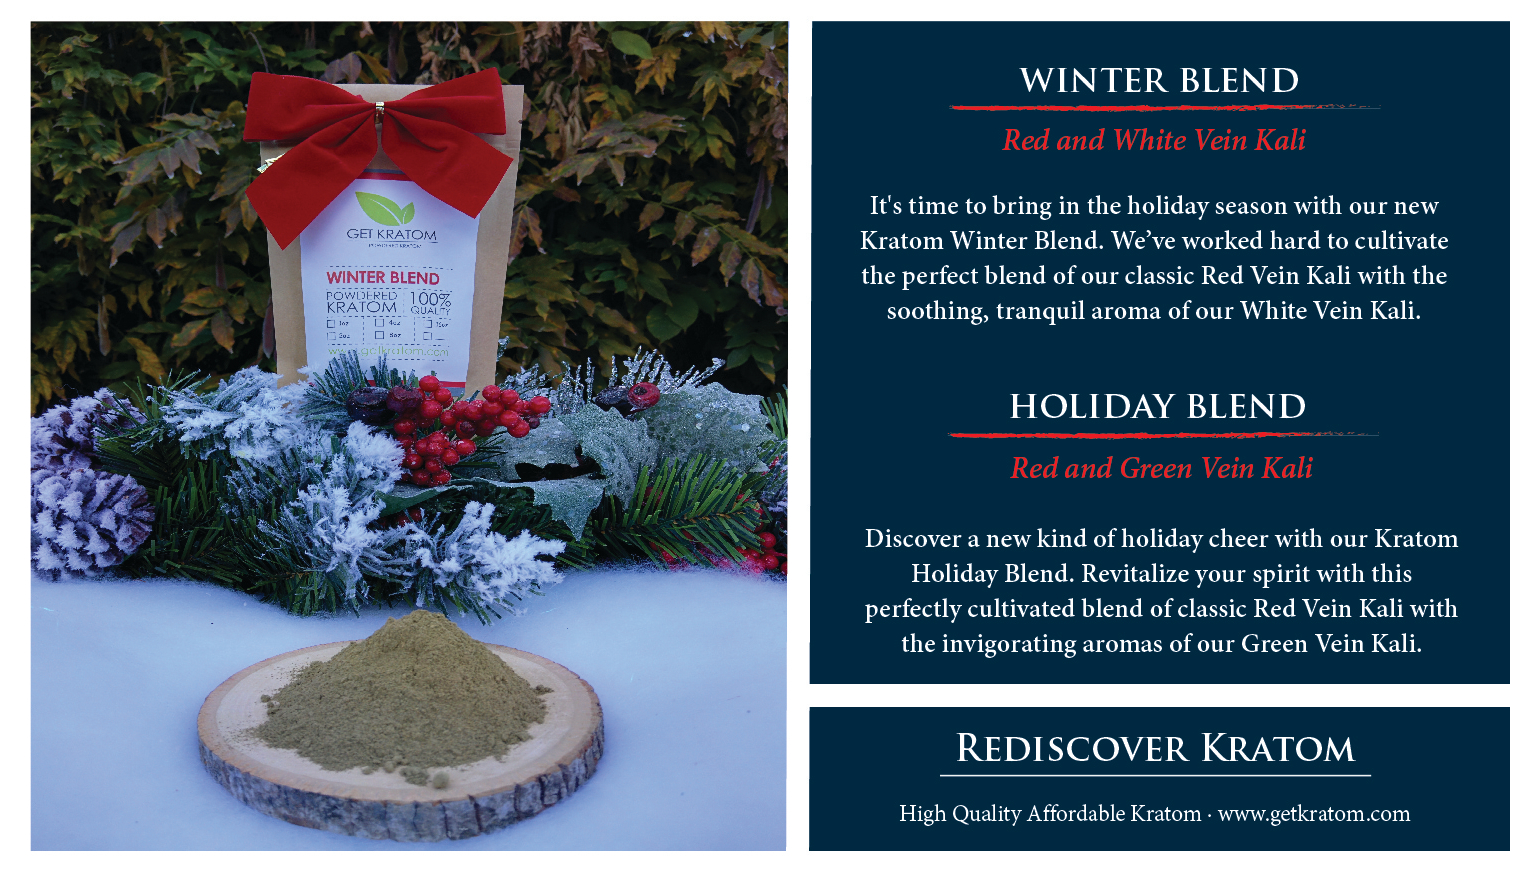 Discover a new kind of holiday cheer with our Kratom Holiday Blend. Revitalize your spirit with this perfectly cultivated blend of classic Red Vein Kali with the invigorating aromas of our Green Vein Kali. It's time to bring in the holiday season with our new Kratom Winter Blend. We've worked hard to cultivate the perfect blend of our classic Red Vein Kali with the soothing, tranquil aroma of our White Vein Kali. Take a break from the cold and warm up to this festive pairing, available for a limited time exclusively at Get Kratom.